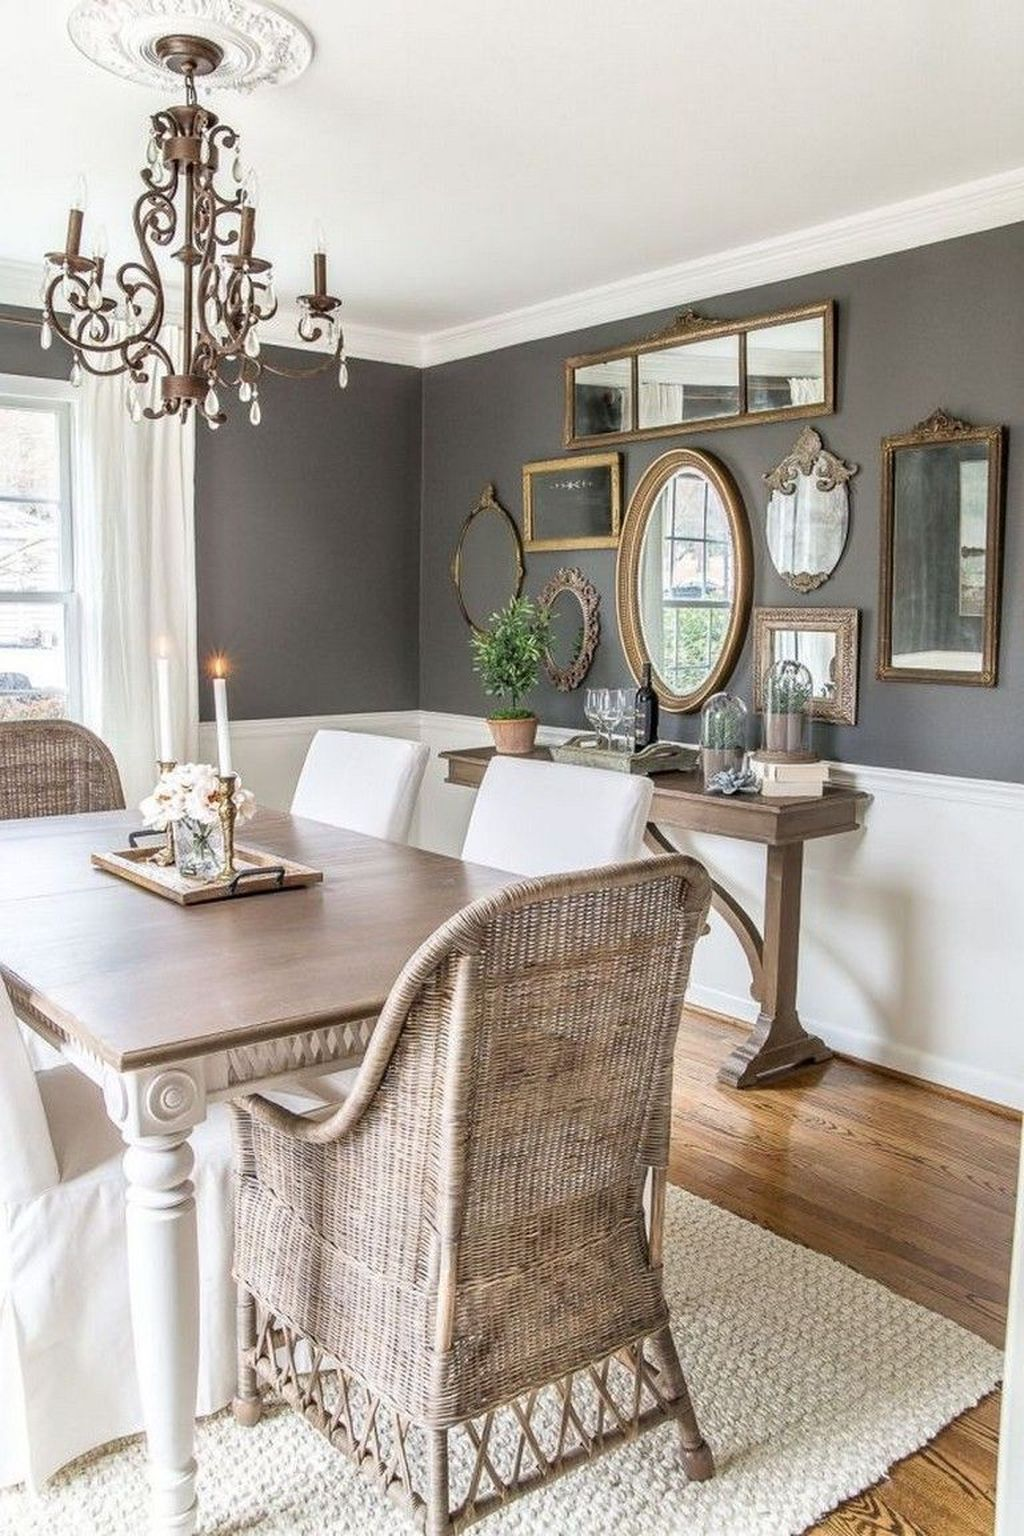 39 Latest Farmhouse Decor Ideas For Dining Room Decoomo Com